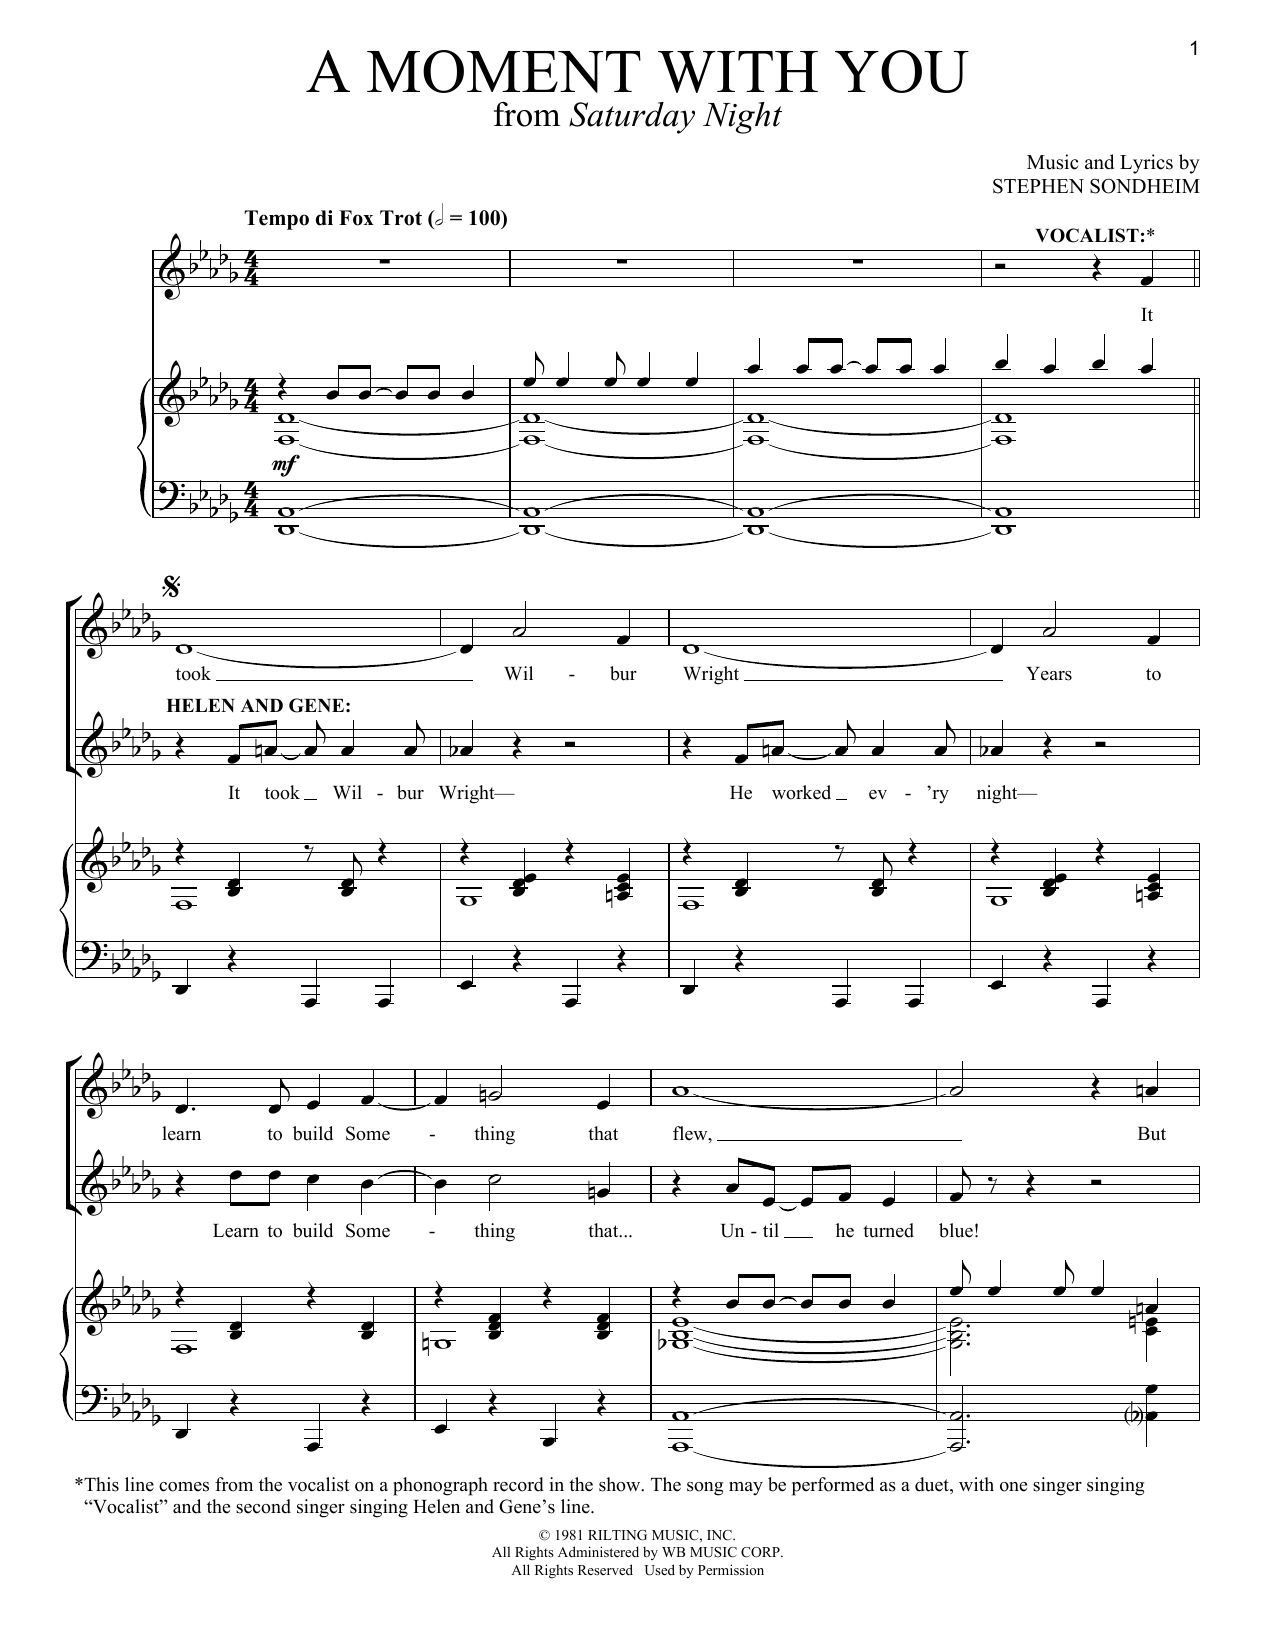 A Moment With You Sheet Music